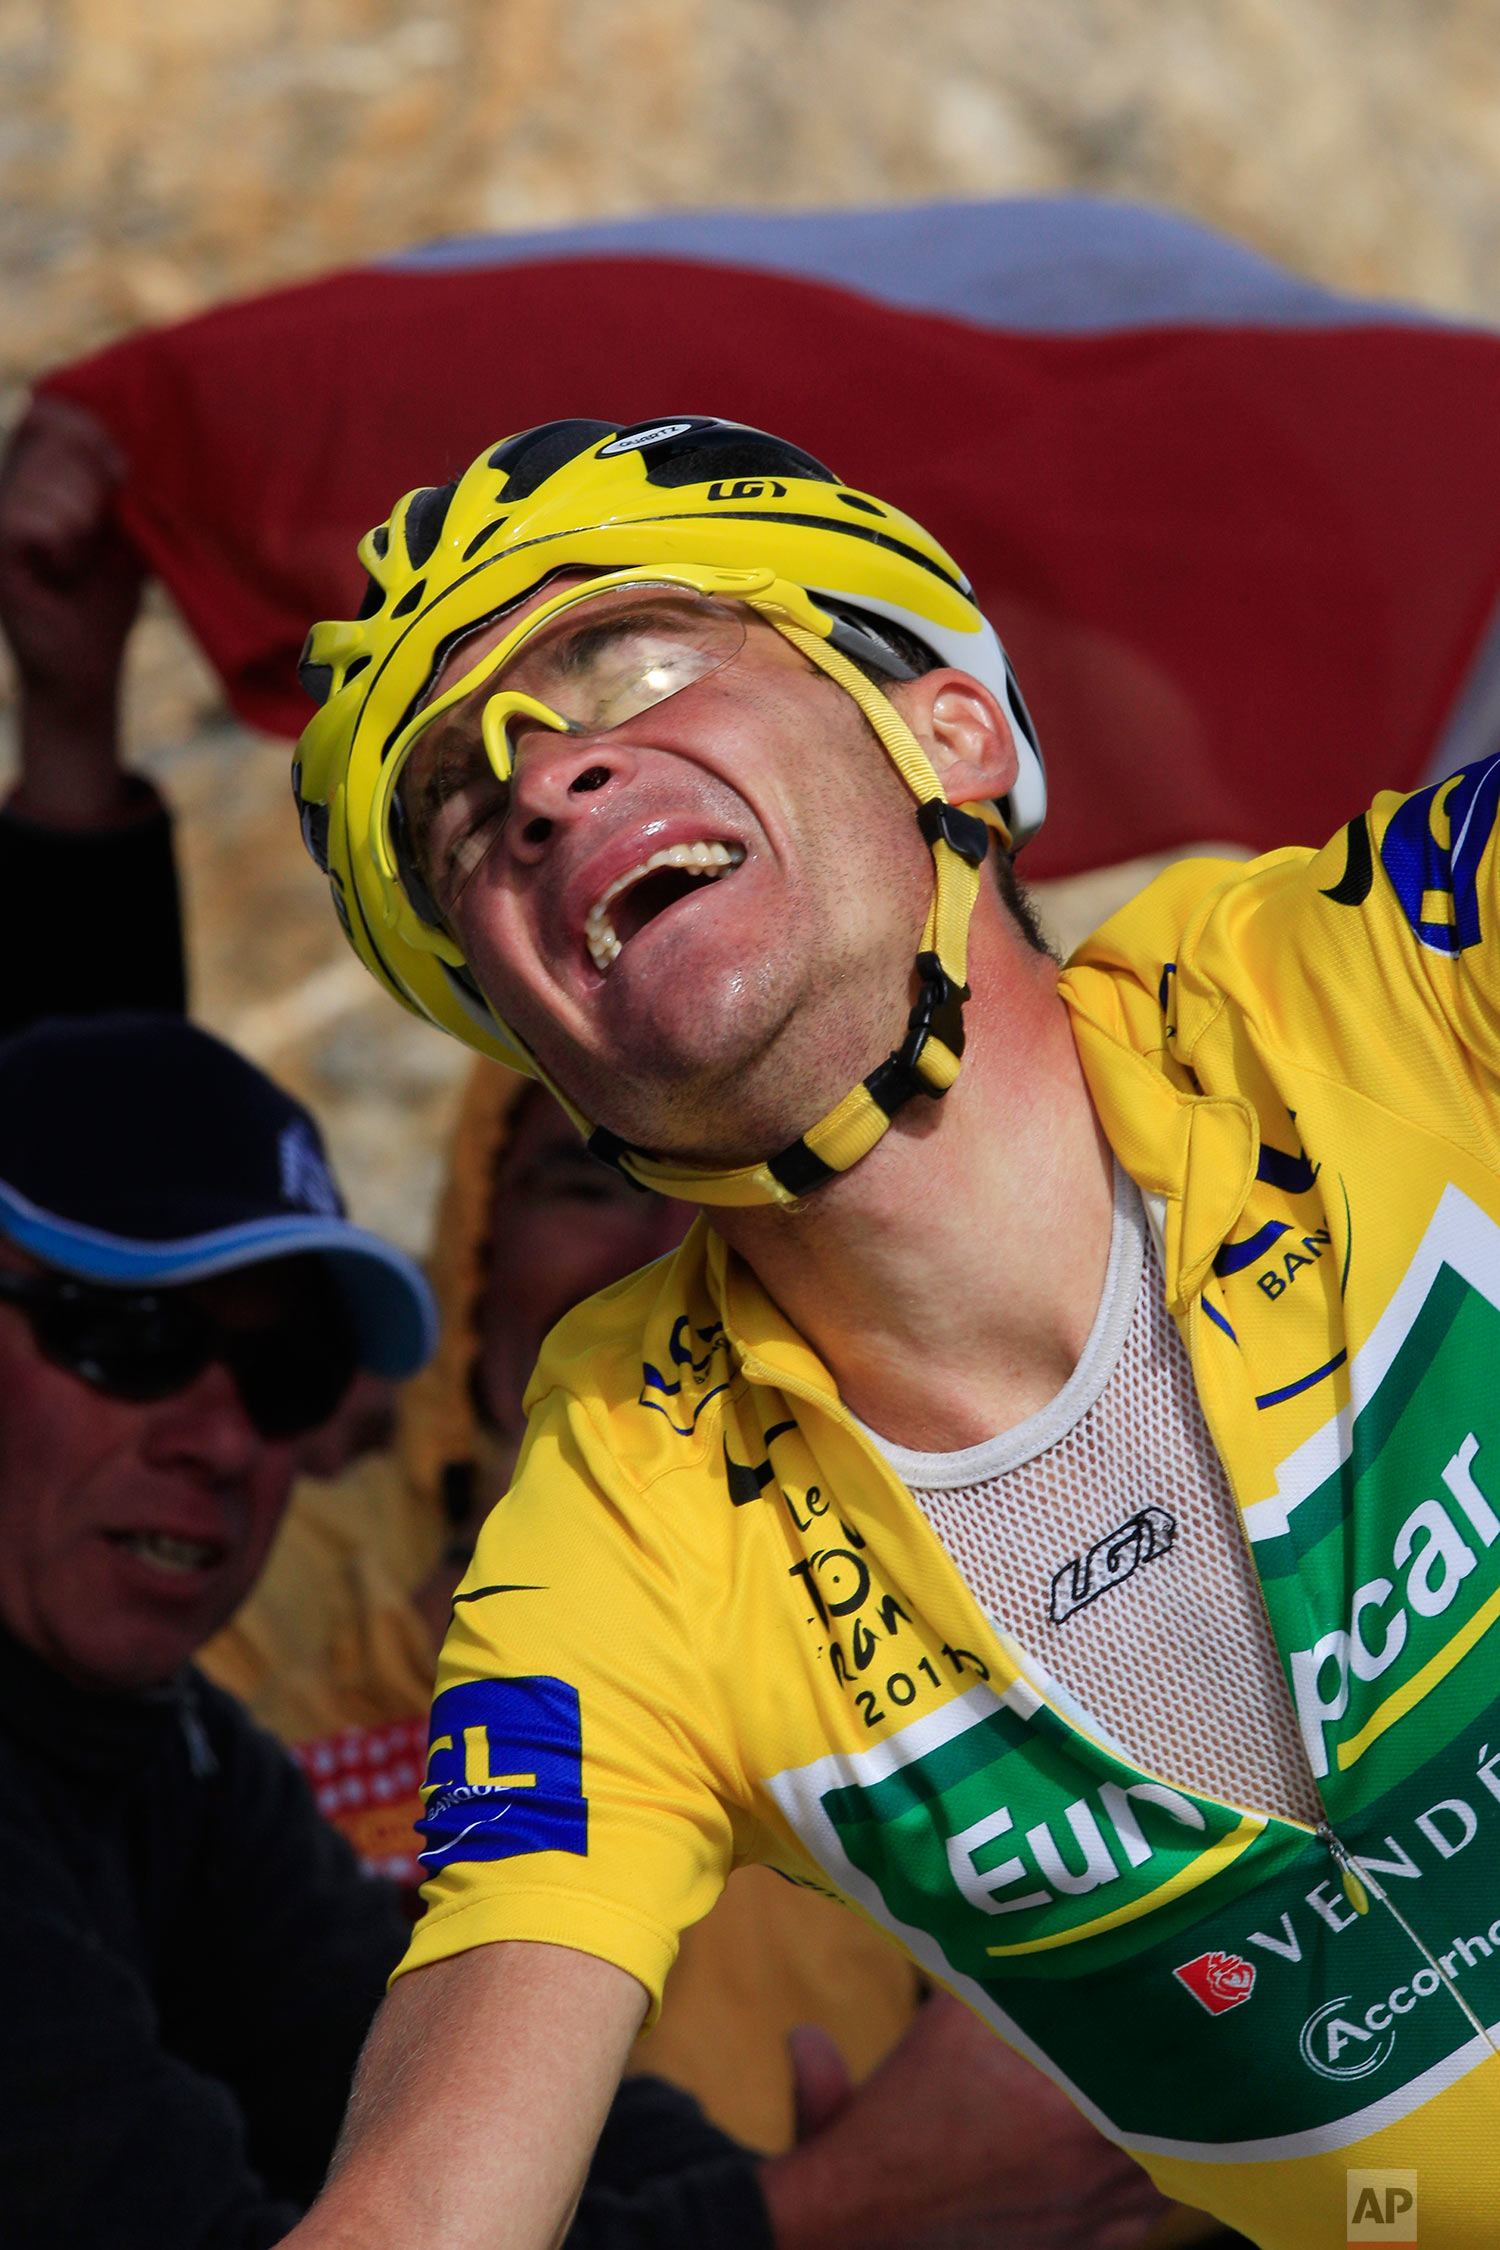 Thomas Voeckler of France, who retains the overall leader's yellow jersey, rejoices as he crosses the finish line on Galibier pass to win the 18th stage of the Tour de France cycling race over 200.5 kilometers (124.6 miles) starting in Pinerolo, Italy, and finishing on Galibier pass, Alps region, France, Thursday July 21, 2011. (AP Photo/Laurent Rebours)